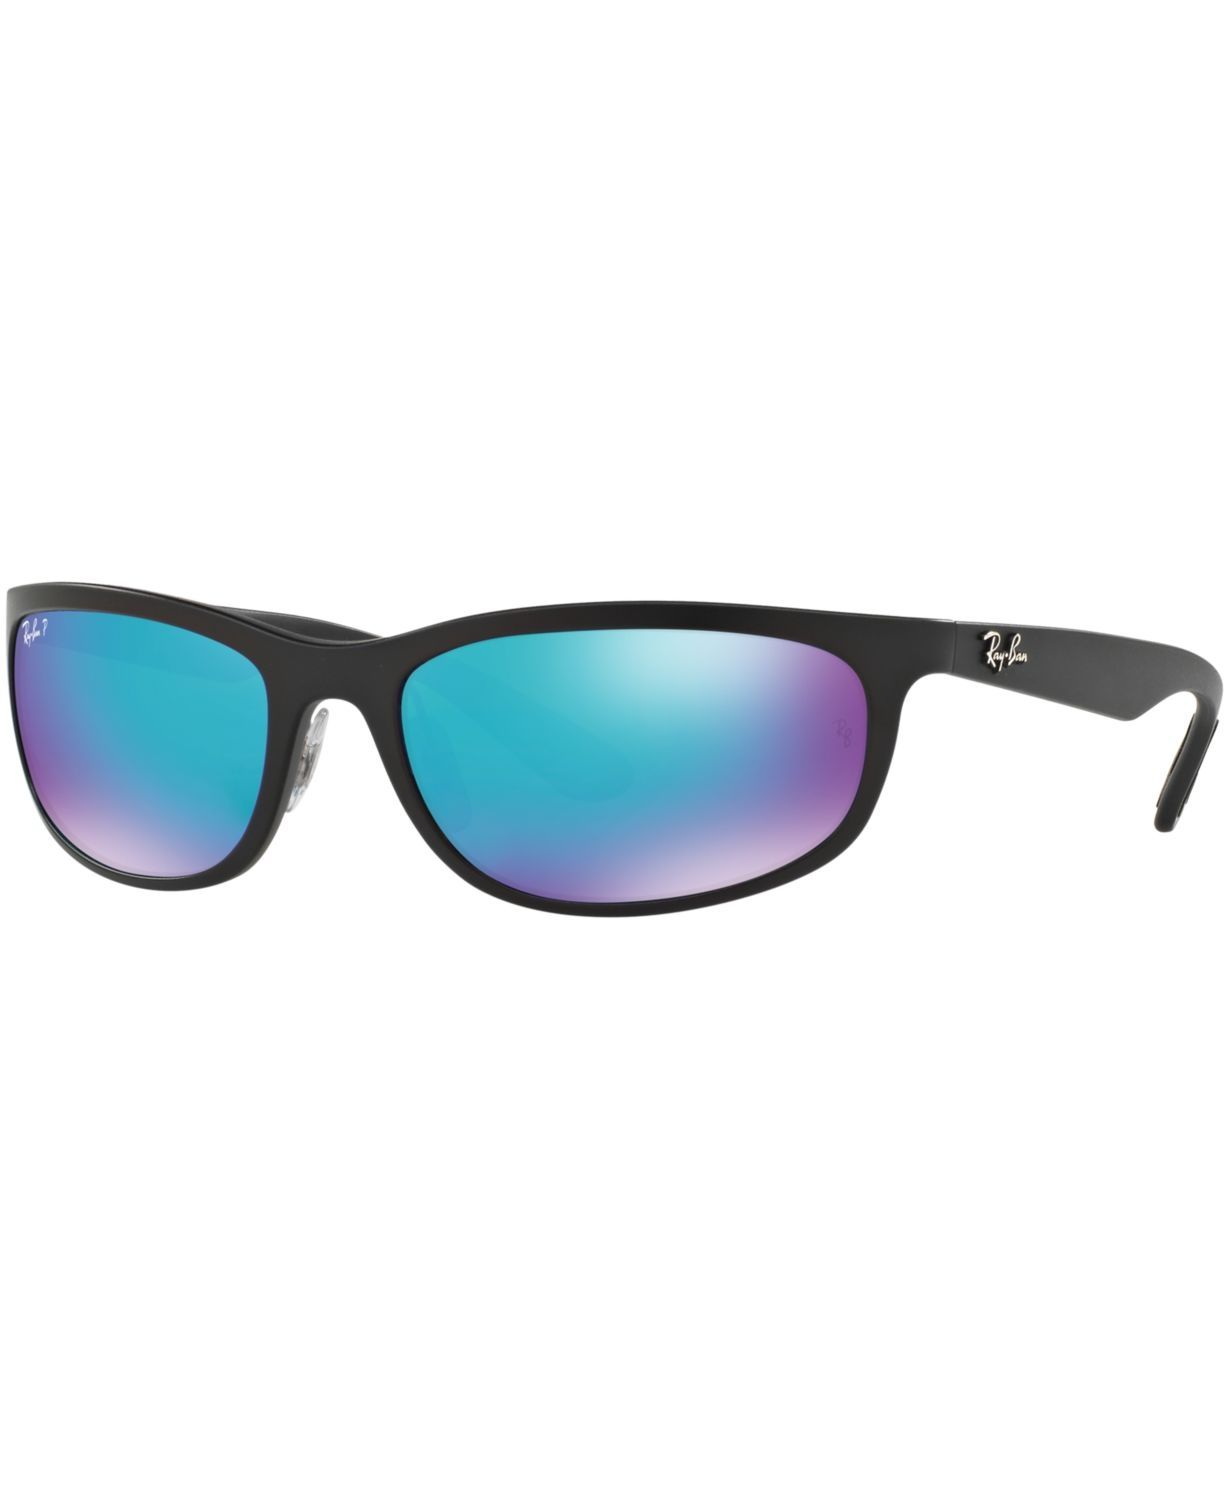 605dc97b6bb1fa Ray-Ban Polarized Chromance Collection Sunglasses, RB4265 62 ...